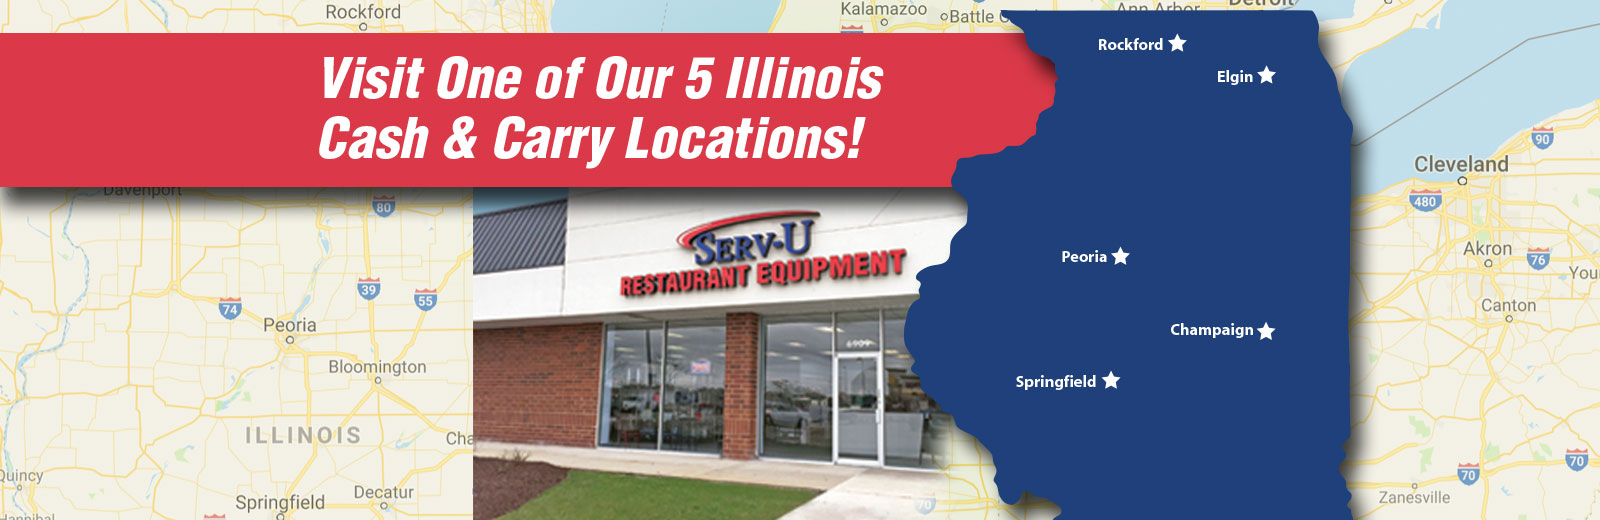 Visit One of Our 4 Illinois Locations